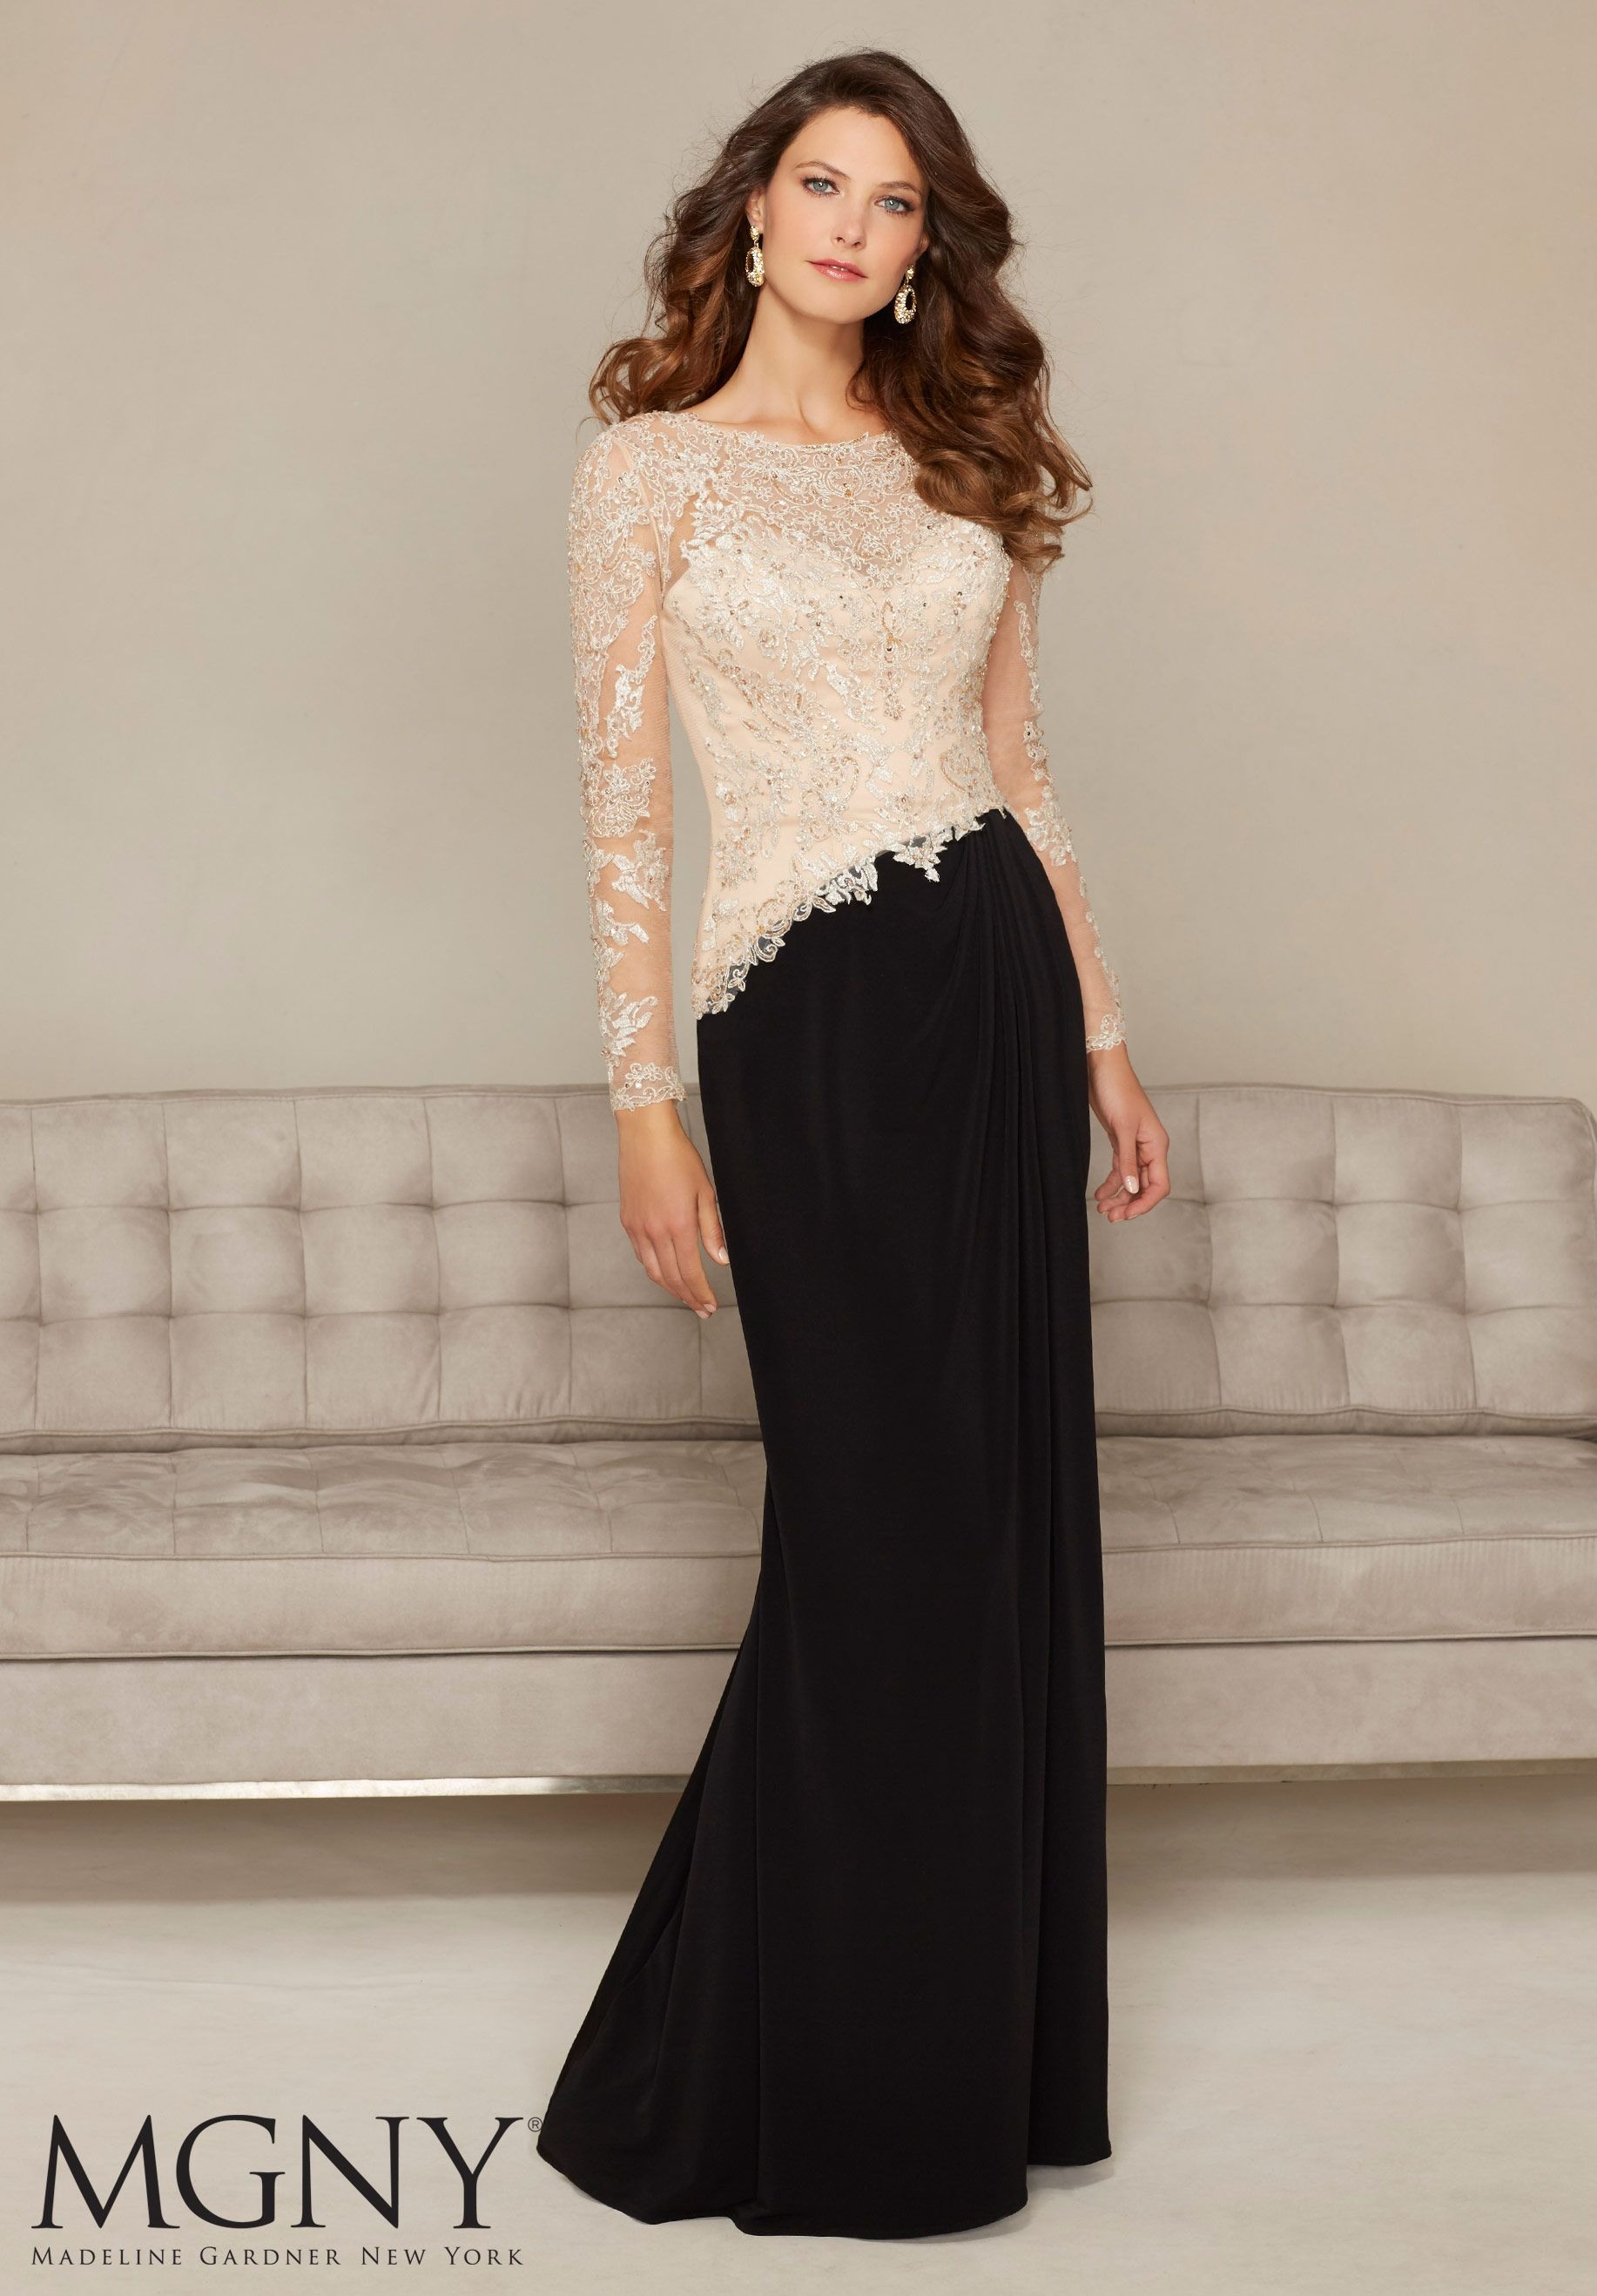 Jersey Dress with Beaded Embroidery on Net Evening Dress | dresses ...